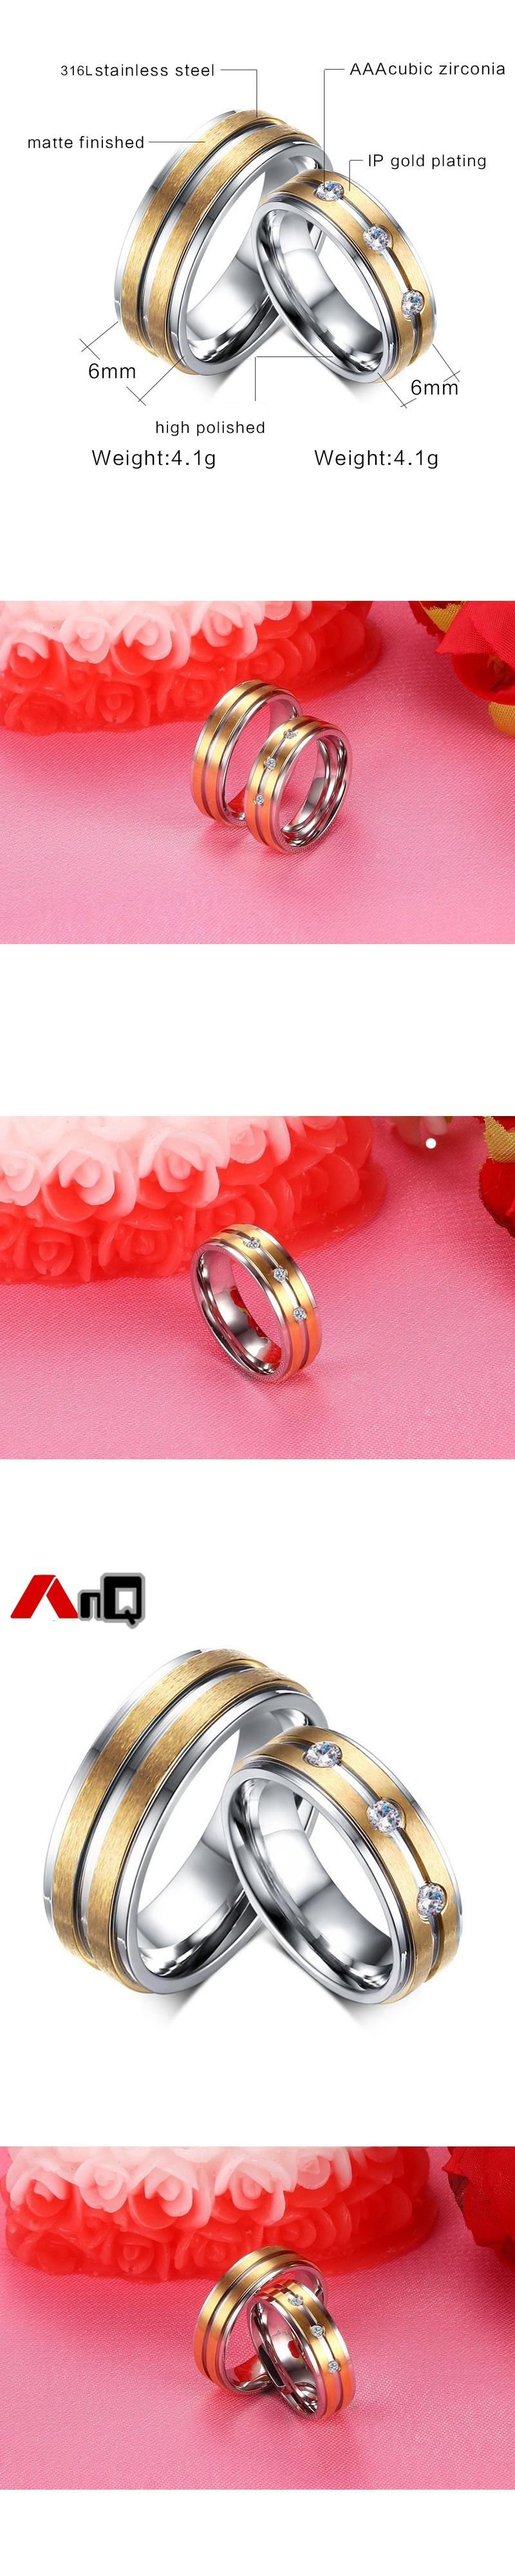 AnQ Vintage 6mm Wide Zircon Couple Titanium Rings Matte Gold Color ...